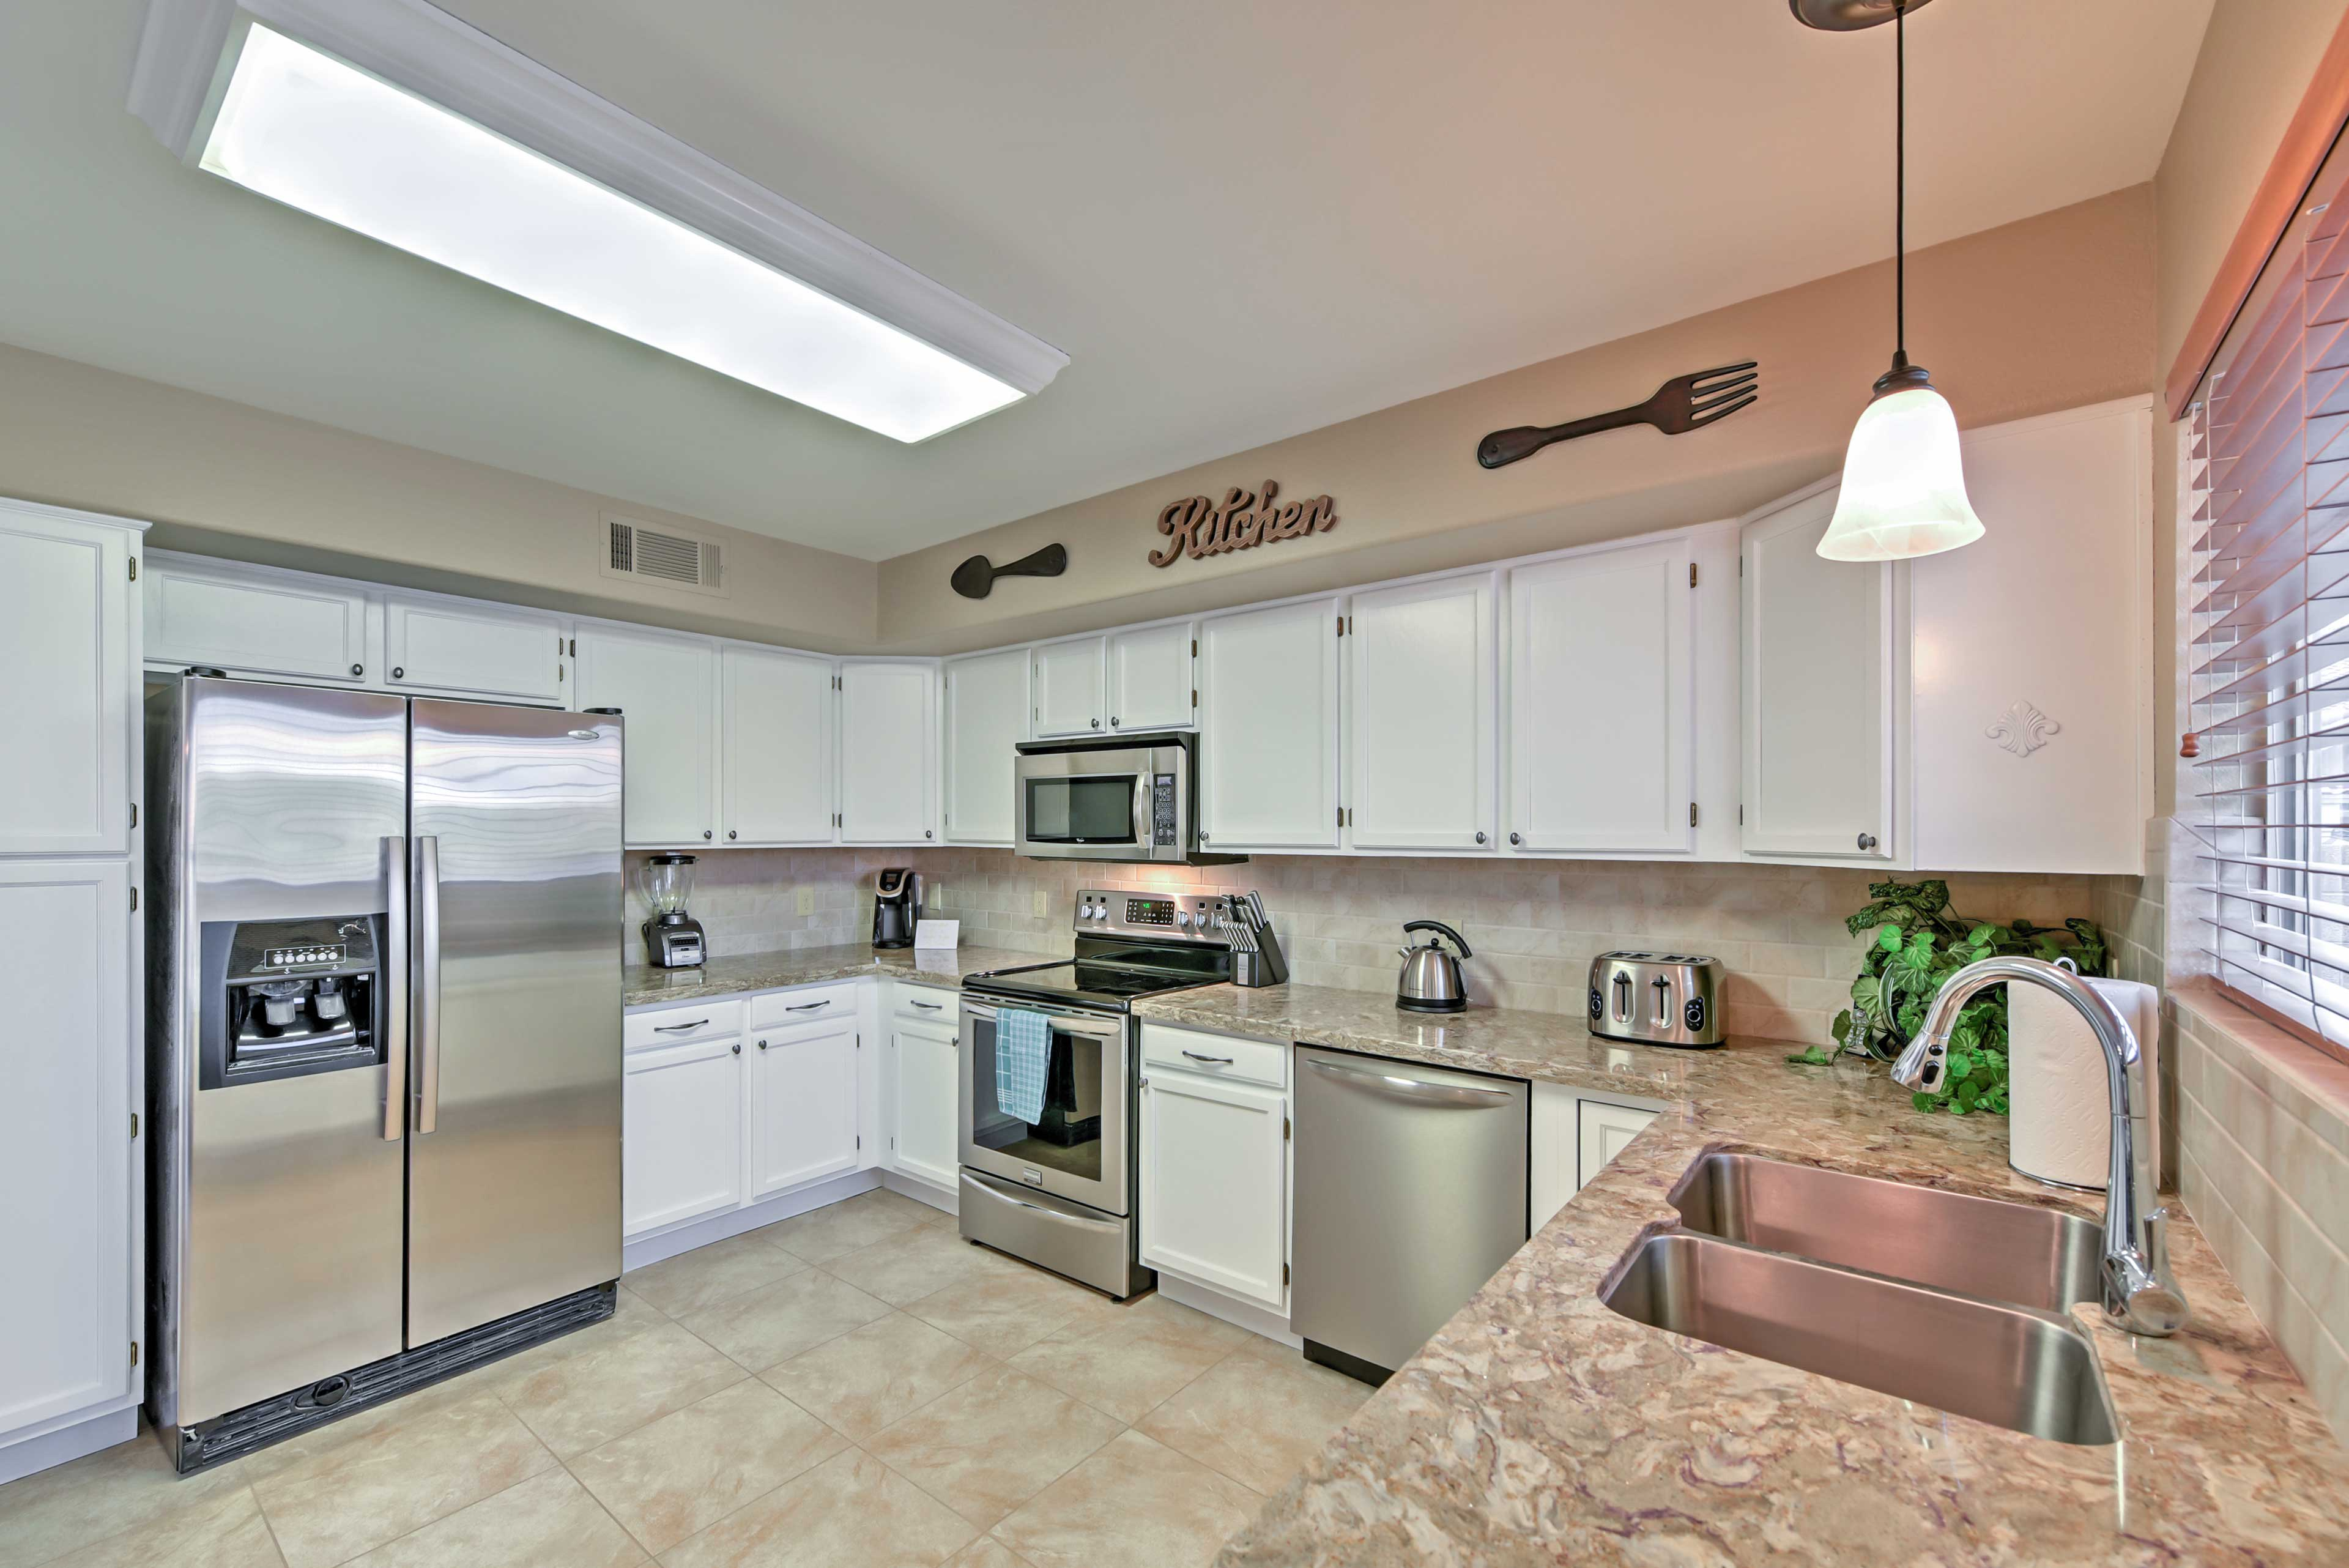 Prepare a delicious treat in this fully equipped kitchen.